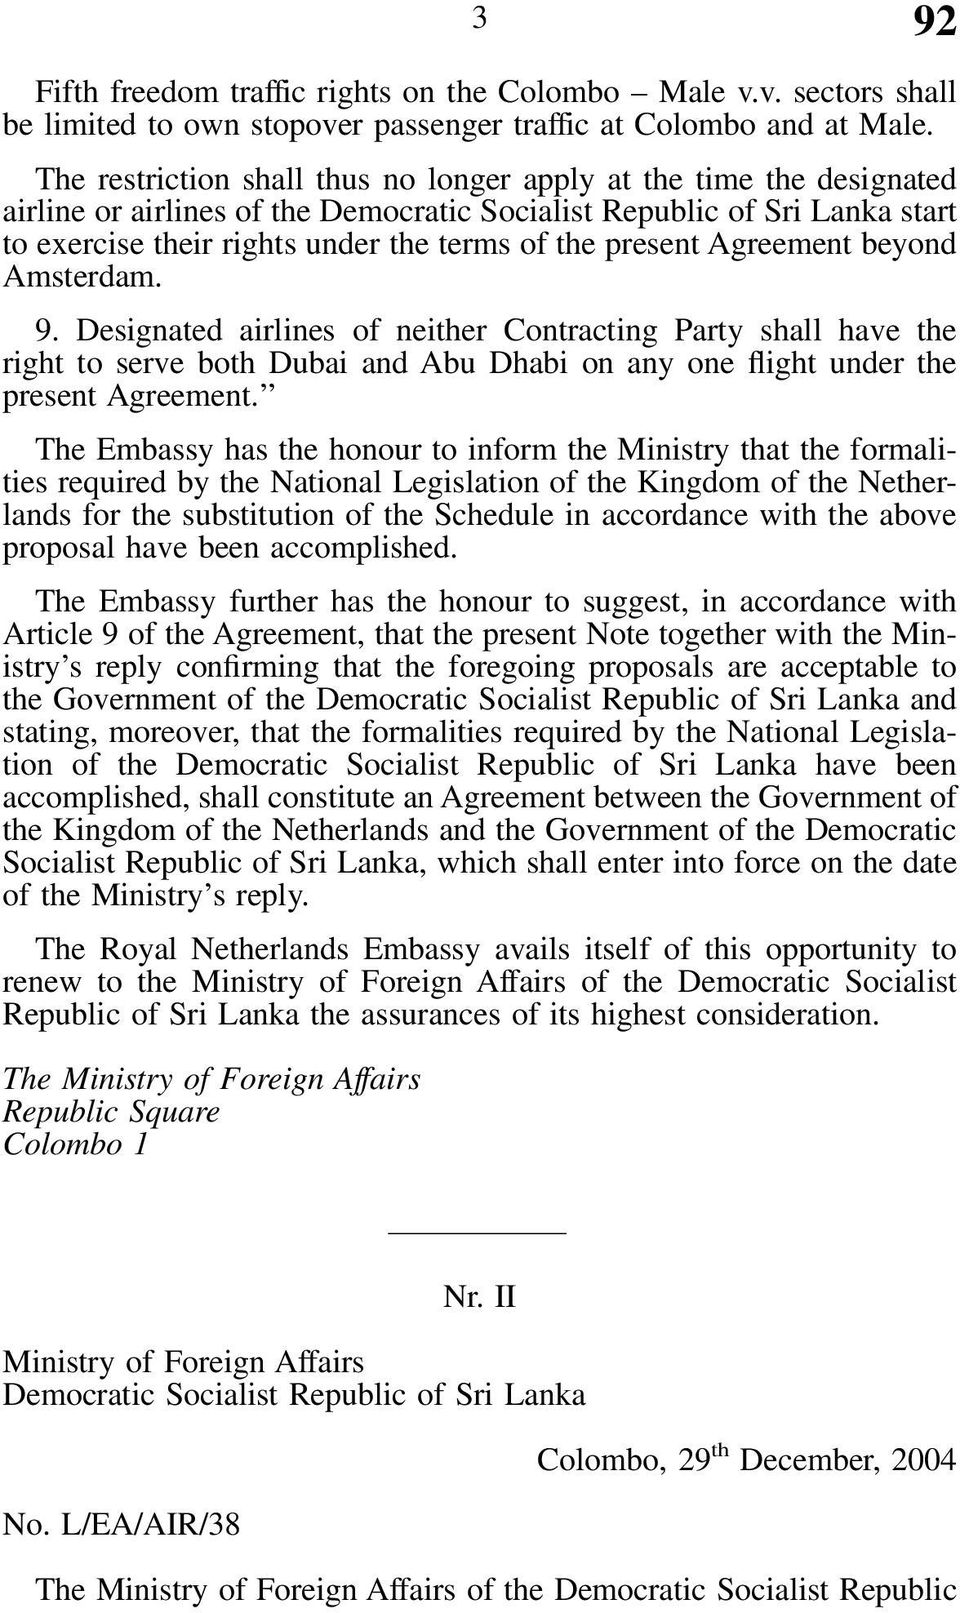 present Agreement beyond Amsterdam. 9. Designated airlines of neither Contracting Party shall have the right to serve both Dubai and Abu Dhabi on any one flight under the present Agreement.